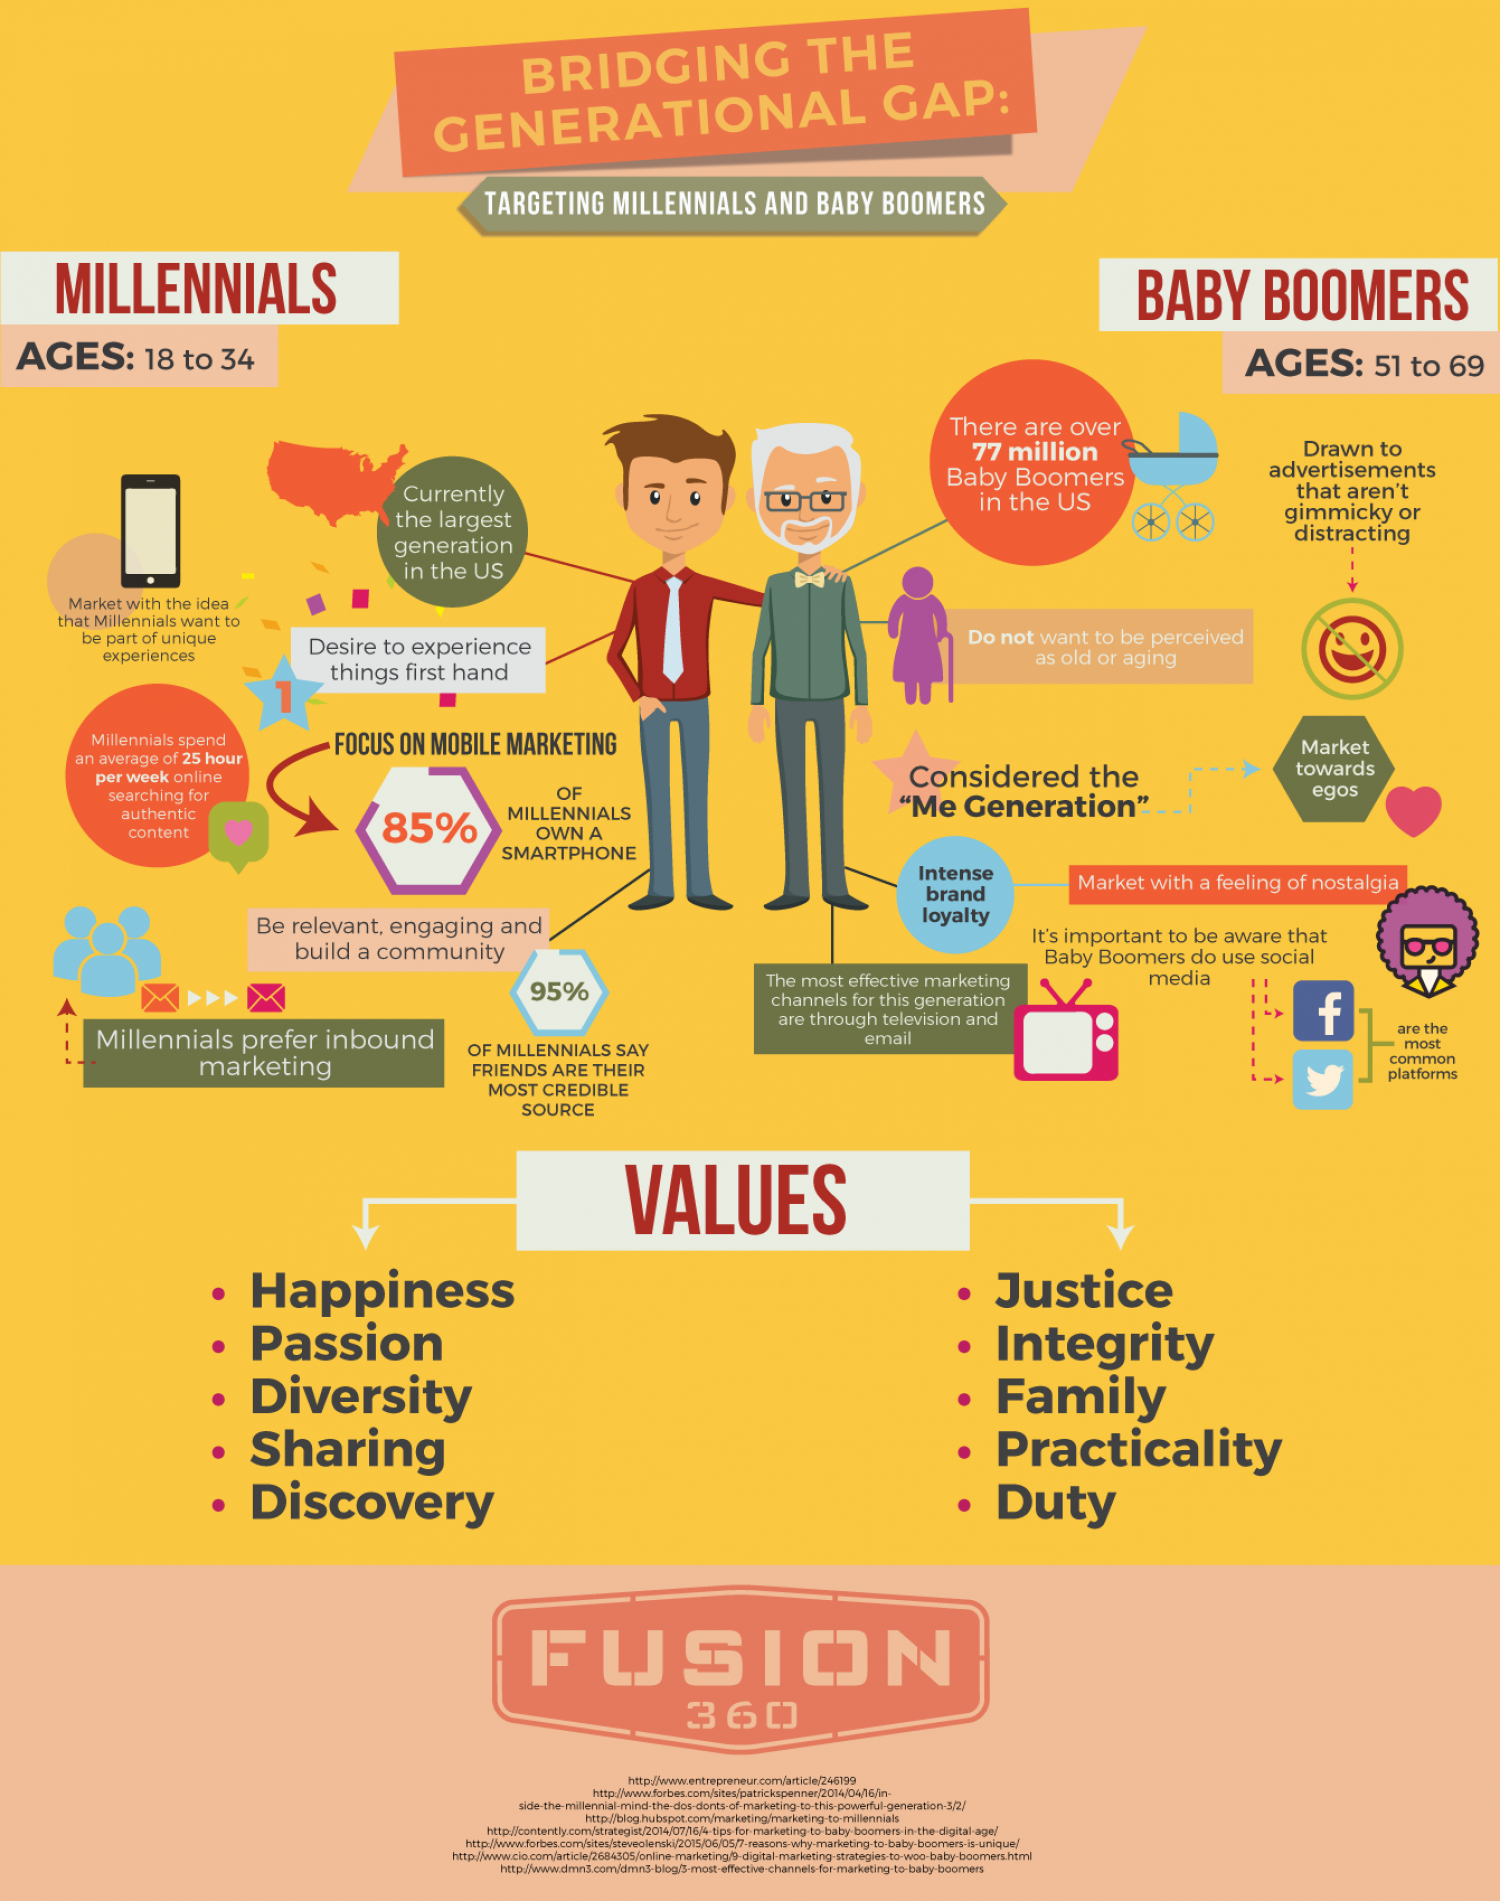 Bridging the Generational Gap: Targeting Millennials and Baby Boomers Infographic